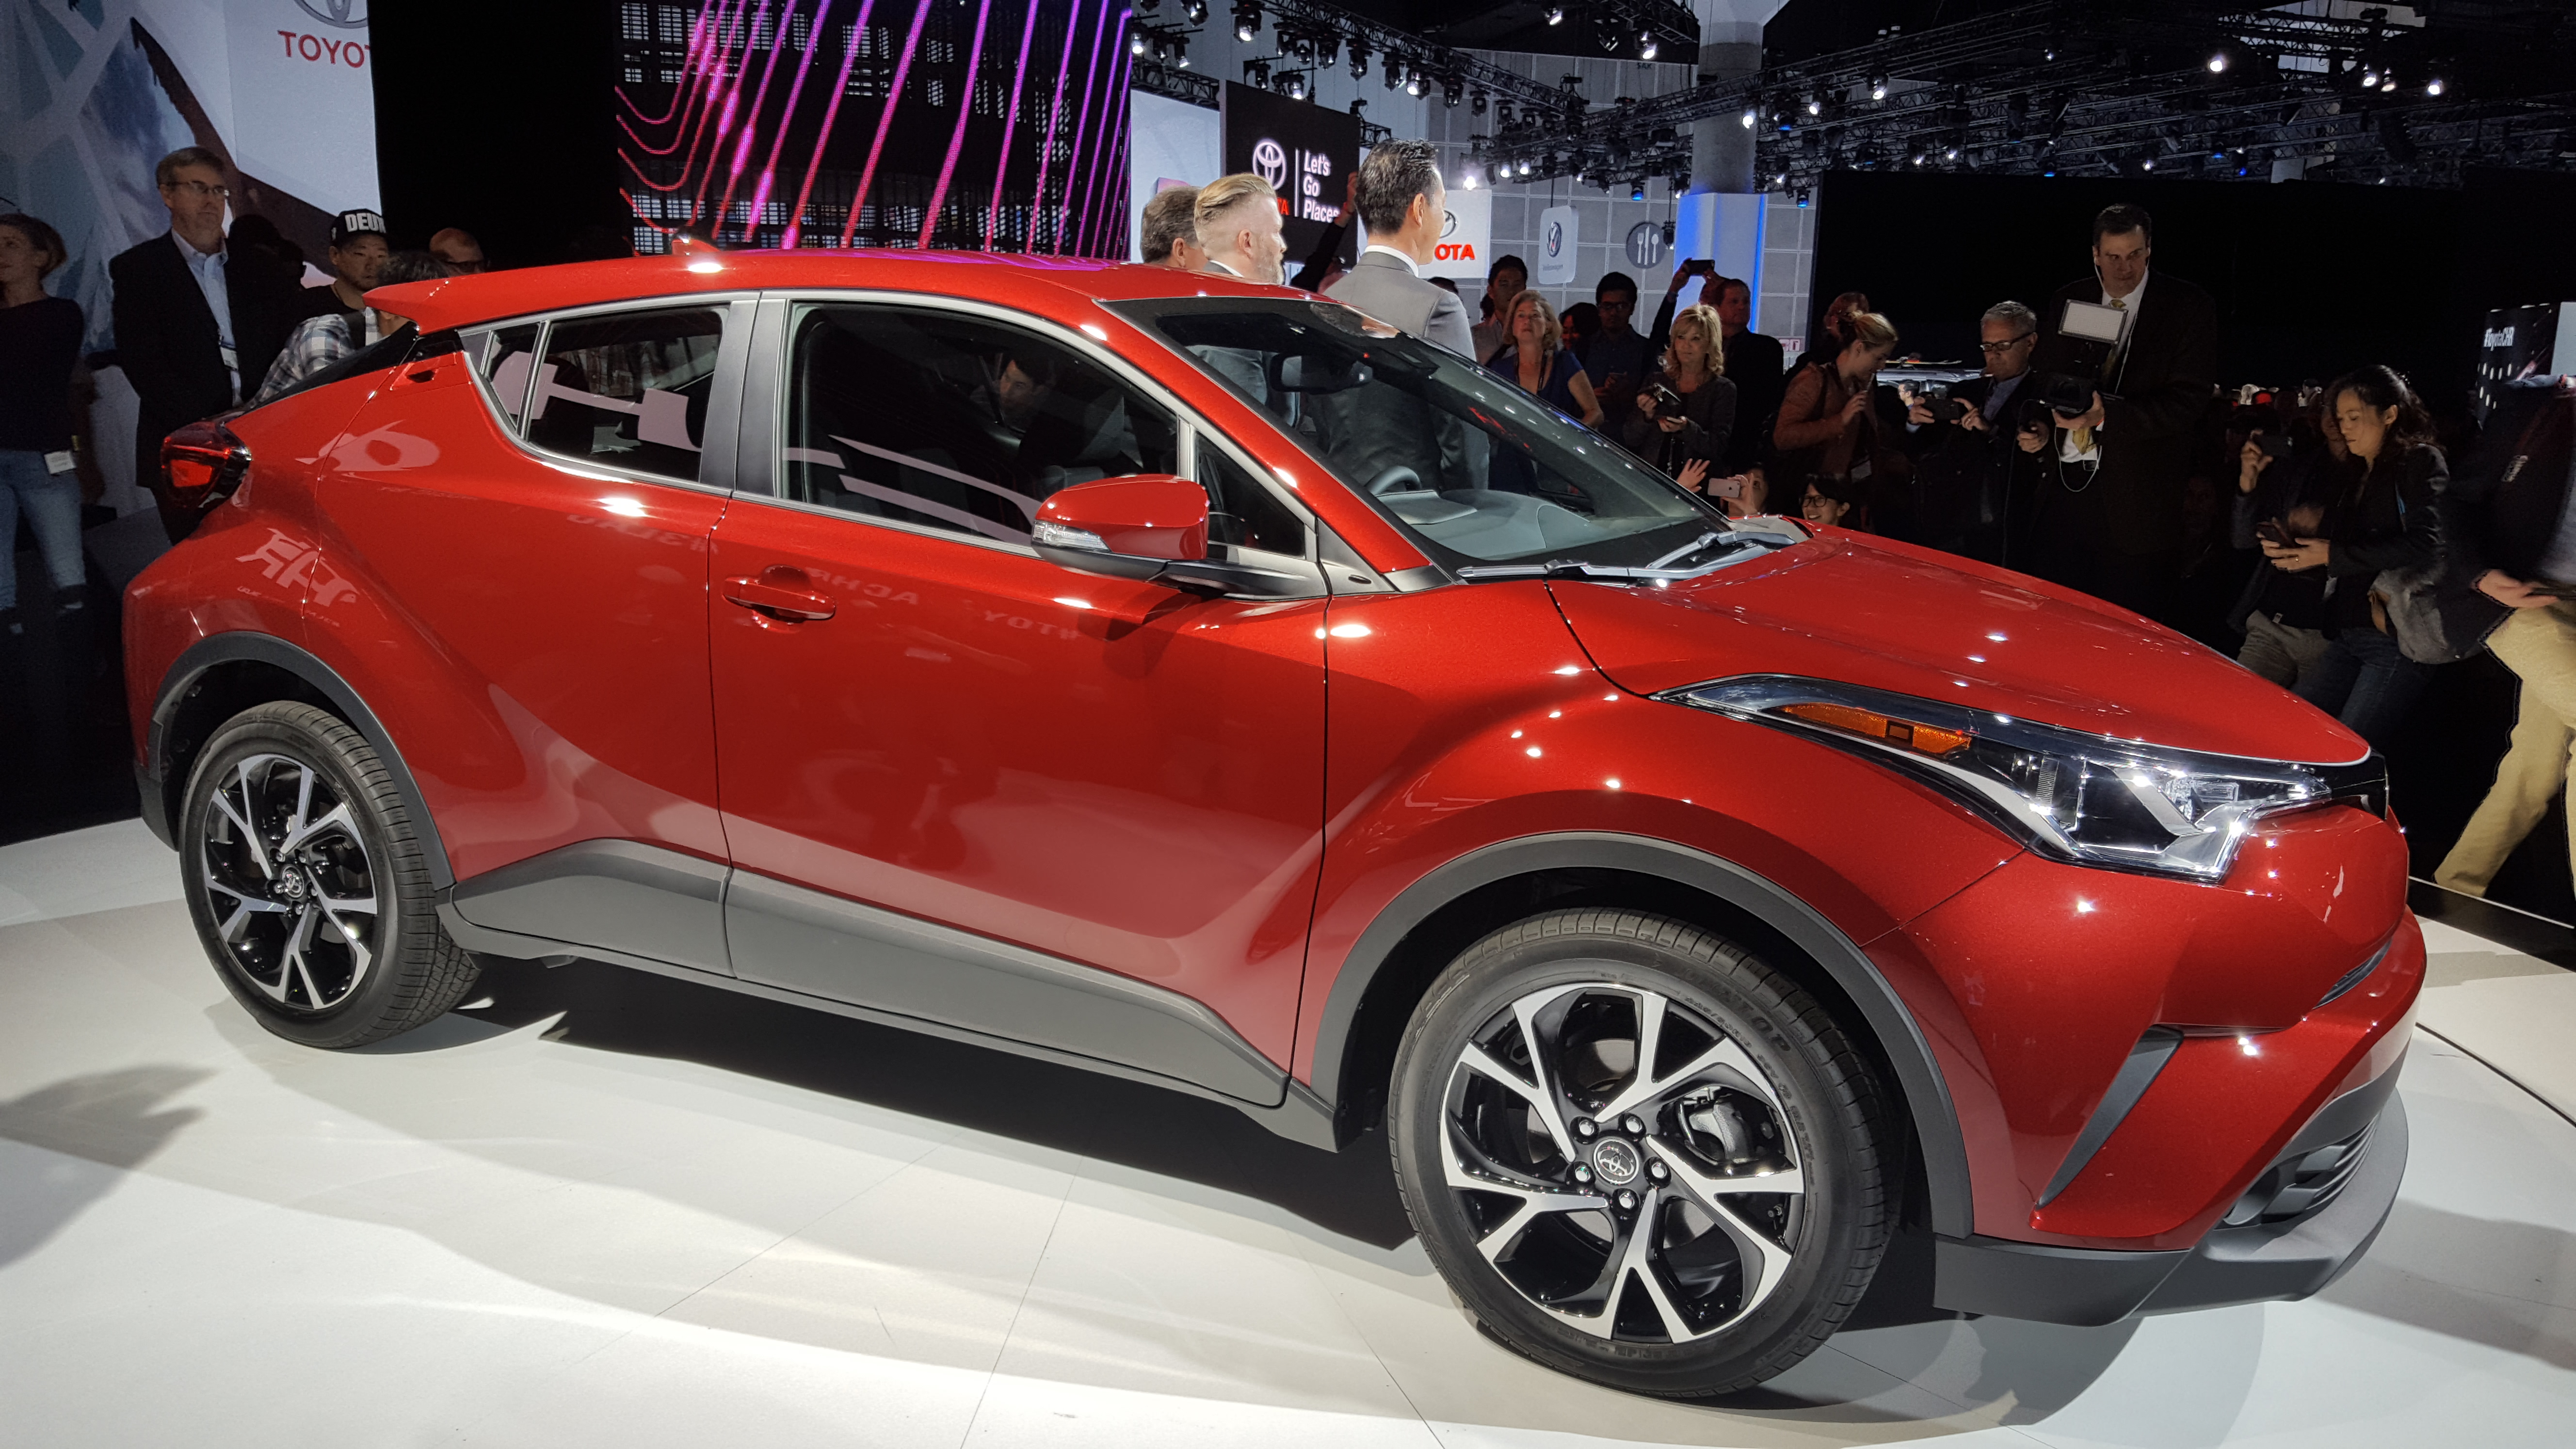 The Toyota C-HR was unveiled Thursday, Nov. 17, 2016 at the LA Auto Show.